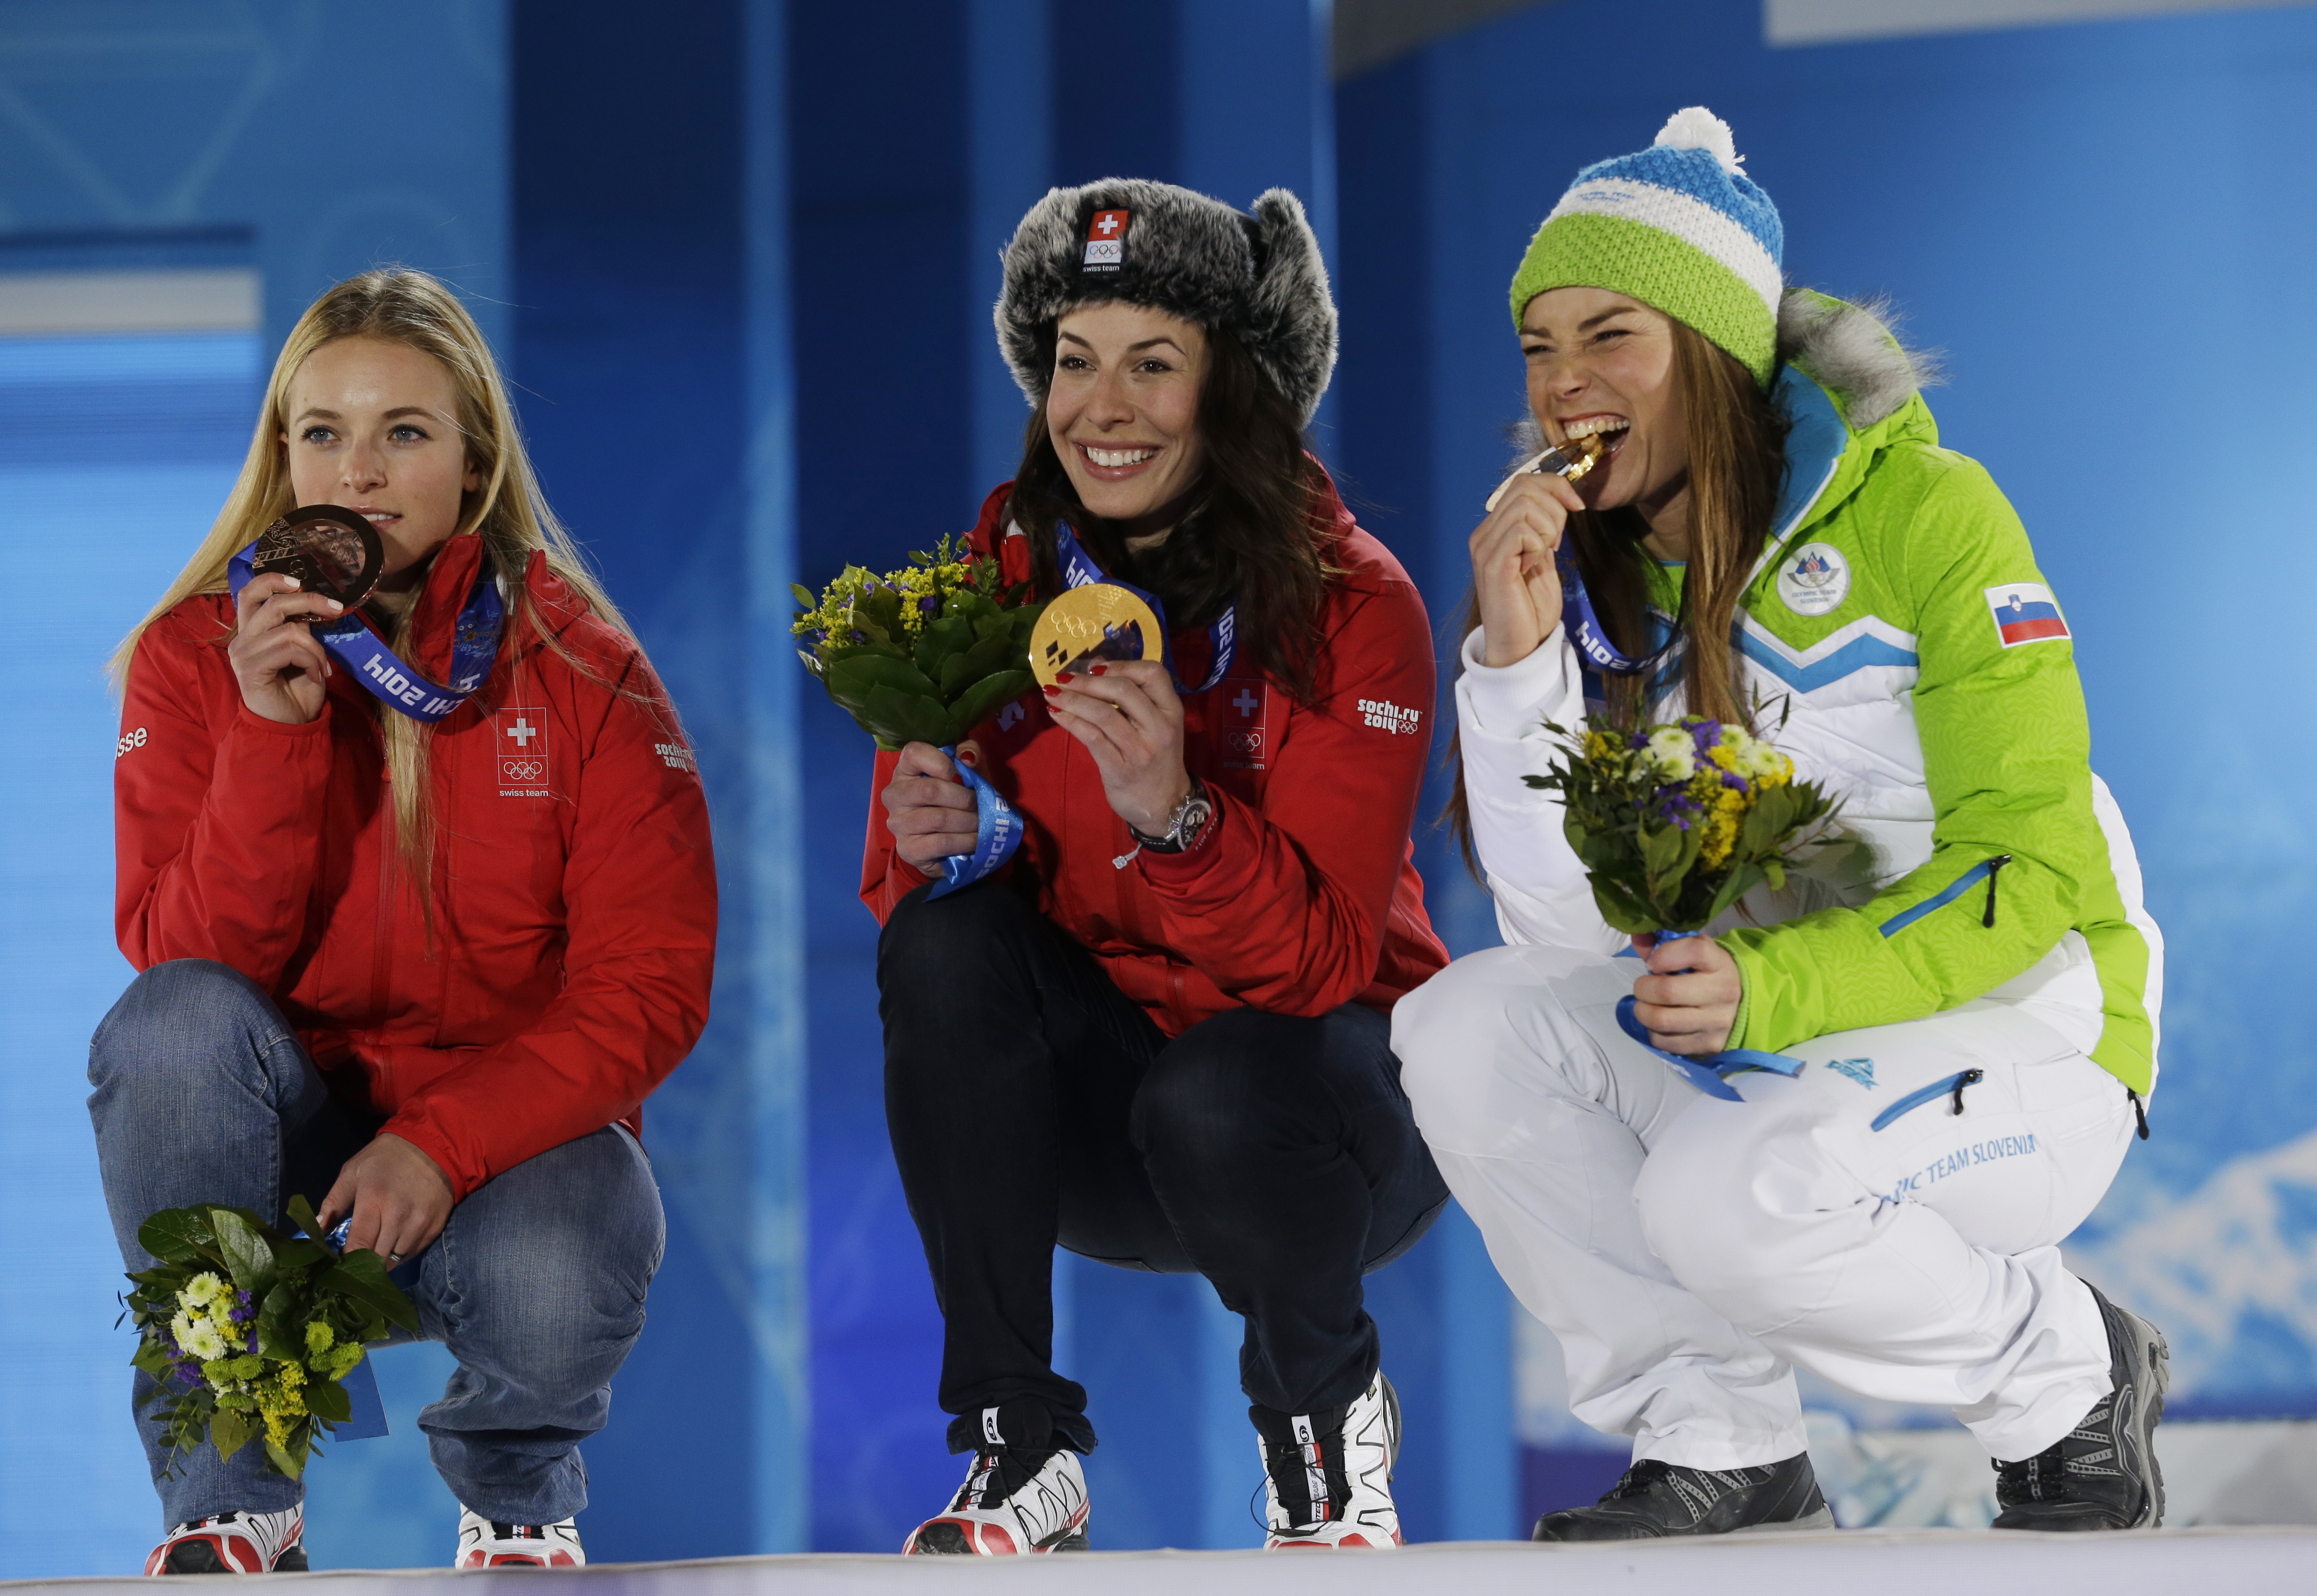 Women's downhill medalists, from left, Switzerland's Lara Gut, bronze, Switzerland's Dominique Gisin and Slovenia's Tina Maze who tied for the gold, pose with their medals at the 2014 Winter Olympics in Sochi, Russia, Wednesday, Feb. 12, 2014.  (AP Photo/Morry Gash)